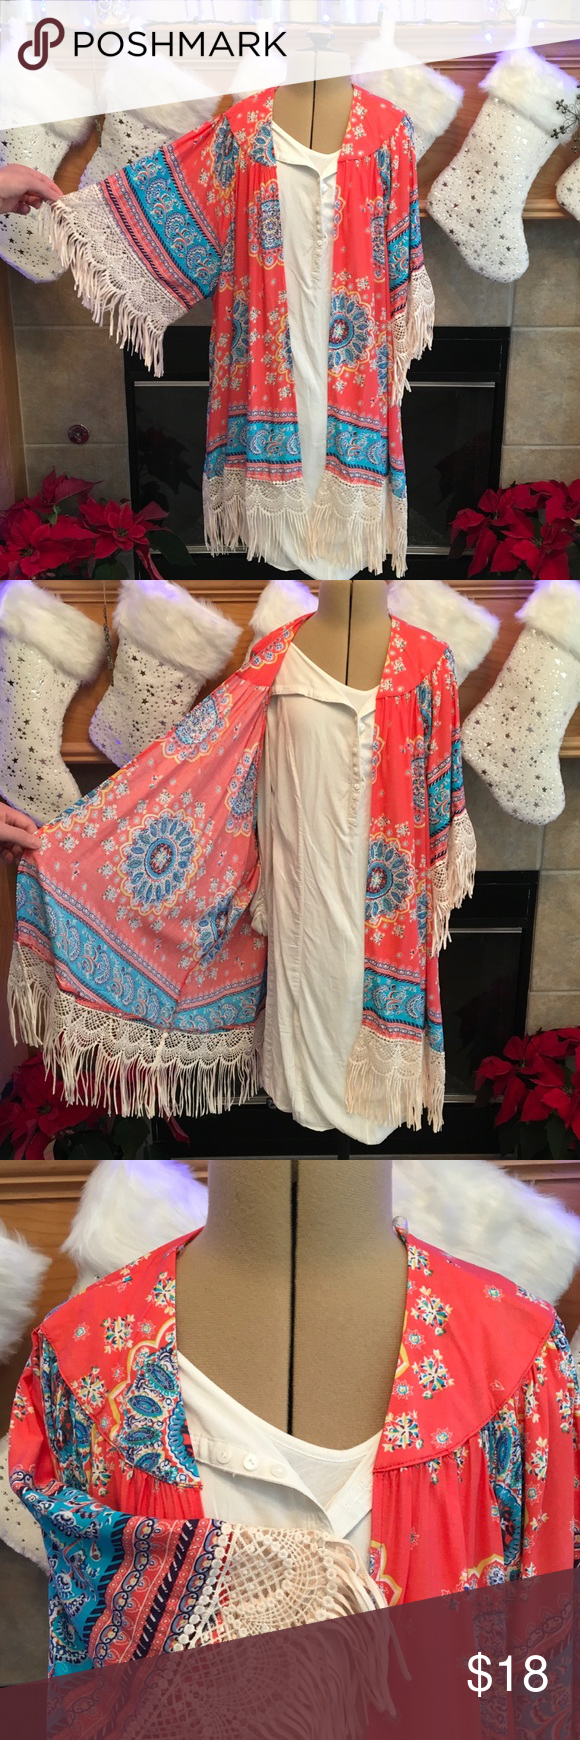 """PRINTED KIMNO-SIZE IS SMALL/MEDIUM-MEDIUM/LARGE LIGHT WEIGHT 60% COTTON-40% POLYESTER-SMALL/MEDIUM ARMHOLE DISTANCE IS ABOUT 27""""-LENGTH IS ABOUT 27 1/2""""-FRINGE IS ABOUT 6""""-MEDIUM/LARGE ARMHOLE DISTANCE IS ABOUT 28""""-LENGTH IS ABOUT 29"""" WITH A 6"""" FRINGE Other"""